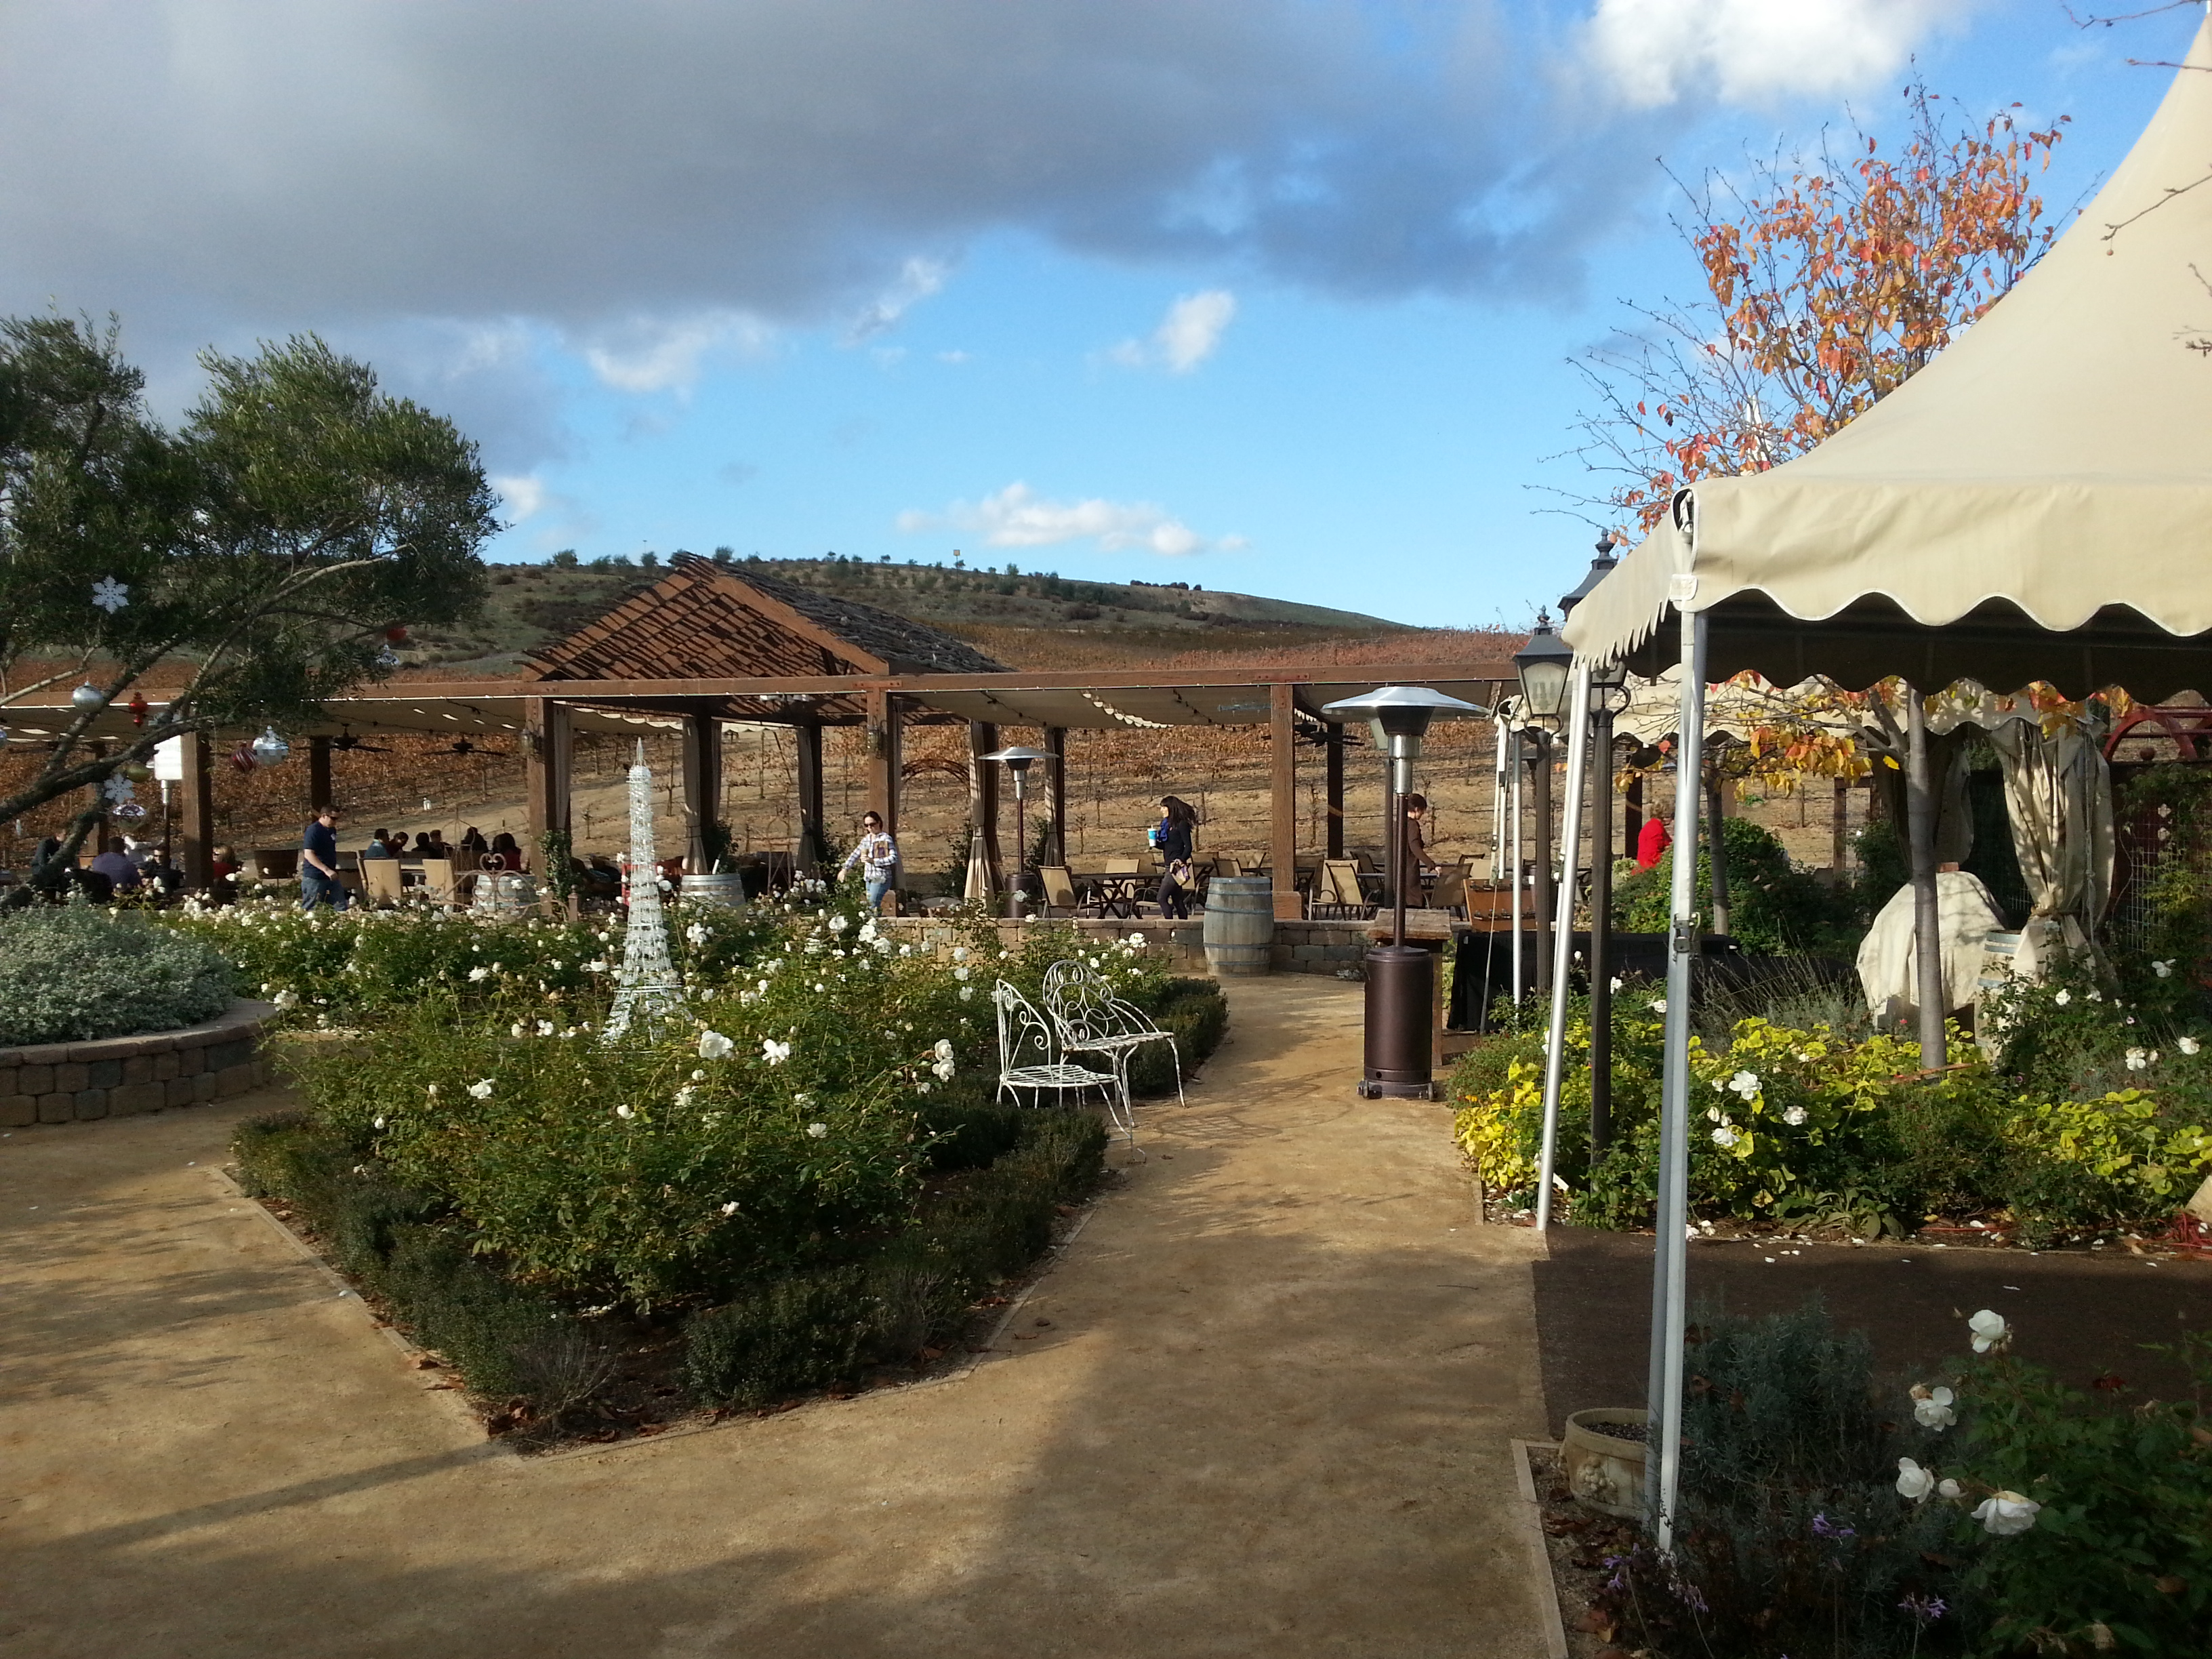 Europa Village Winery Temecula